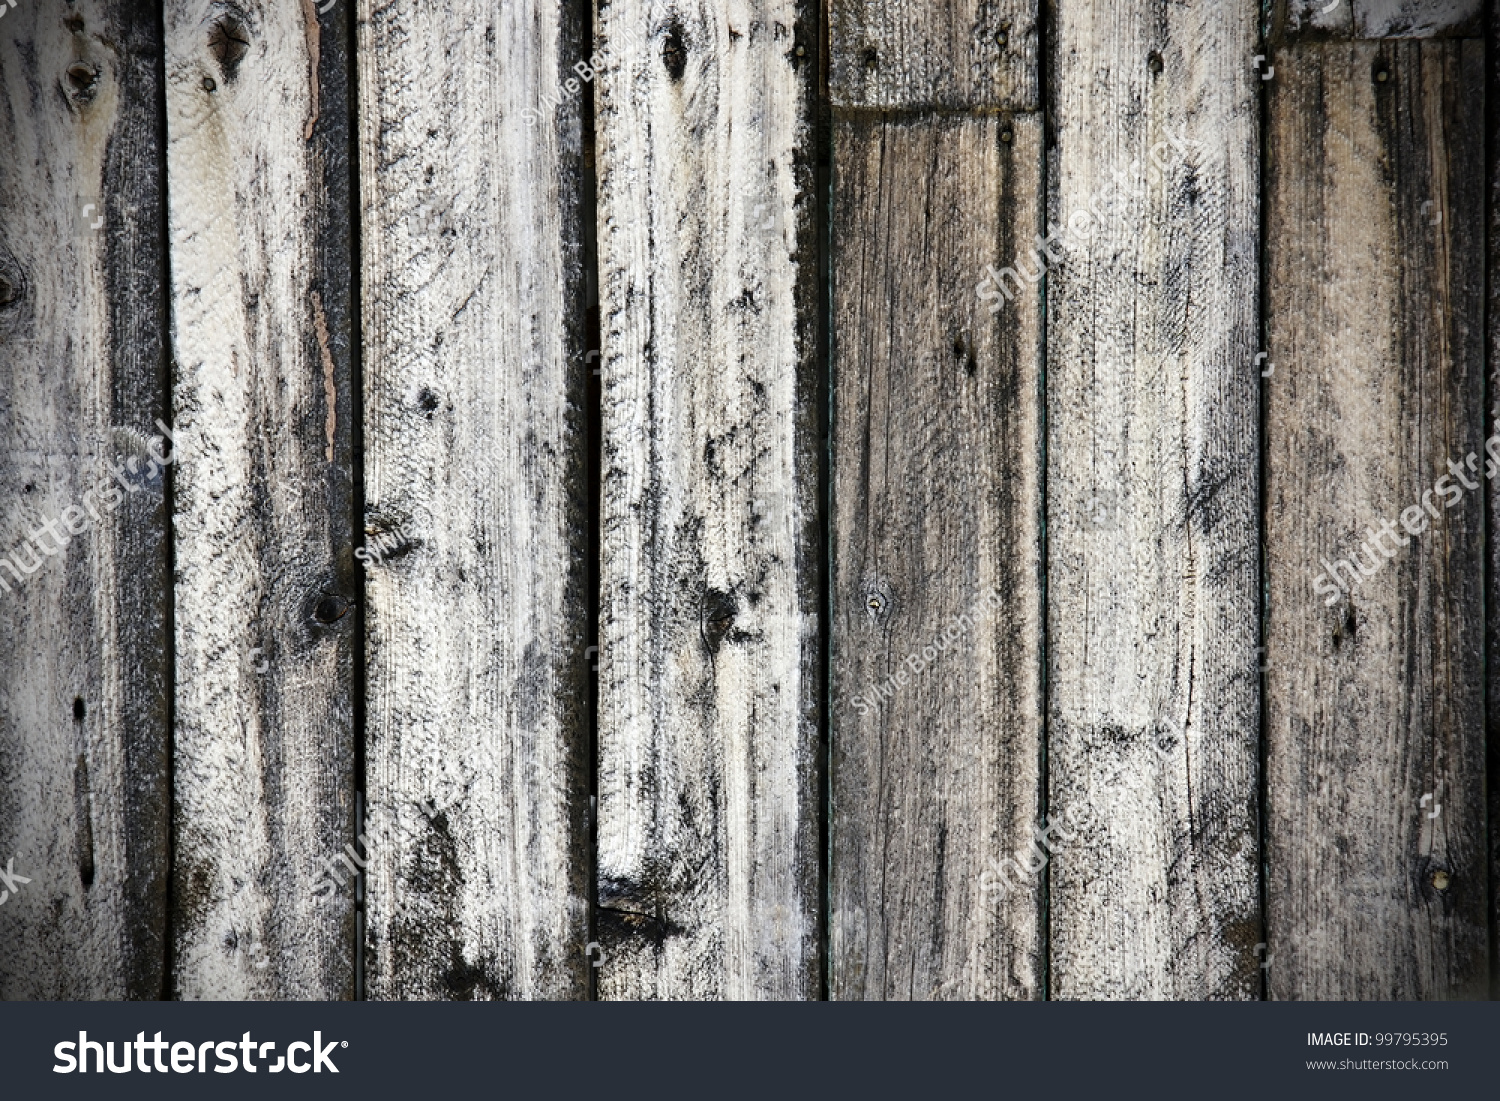 Grungy dramatic old exterior rough wood stock photo for Exterior background